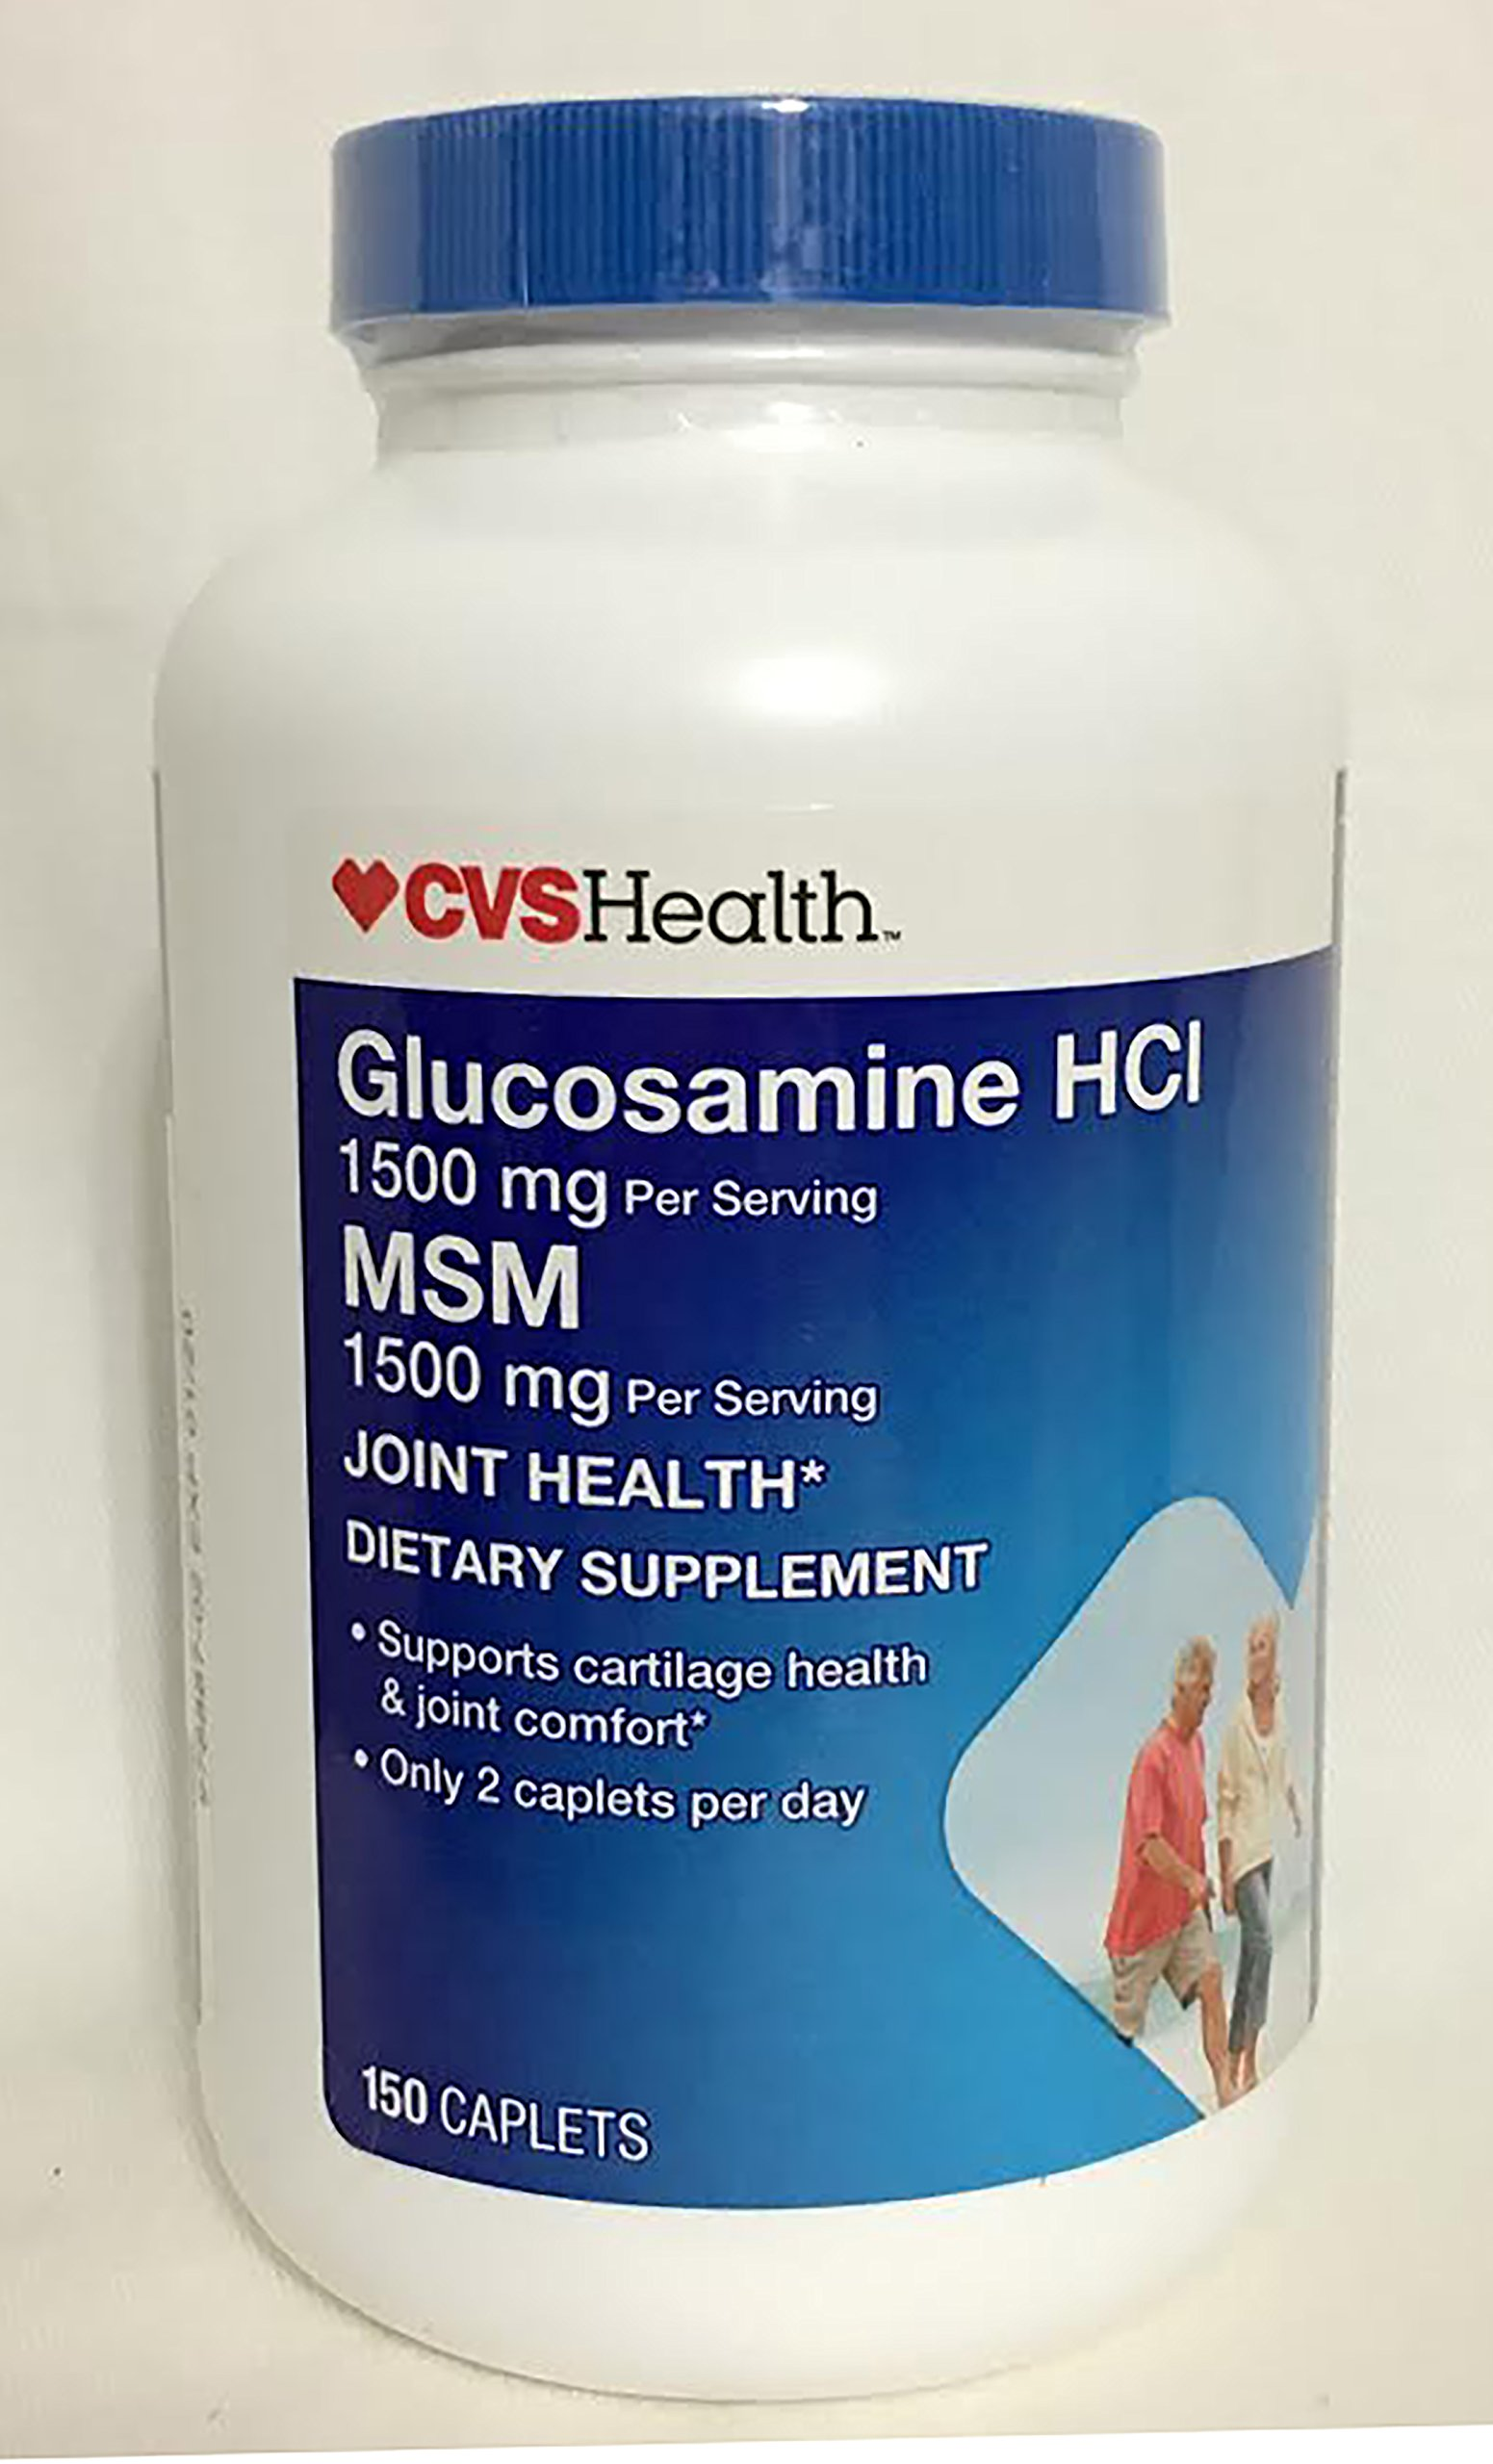 CVS Glucosamine HCI 1500 mg MSM Joint Health Dietary Supplement 150 Caplets.